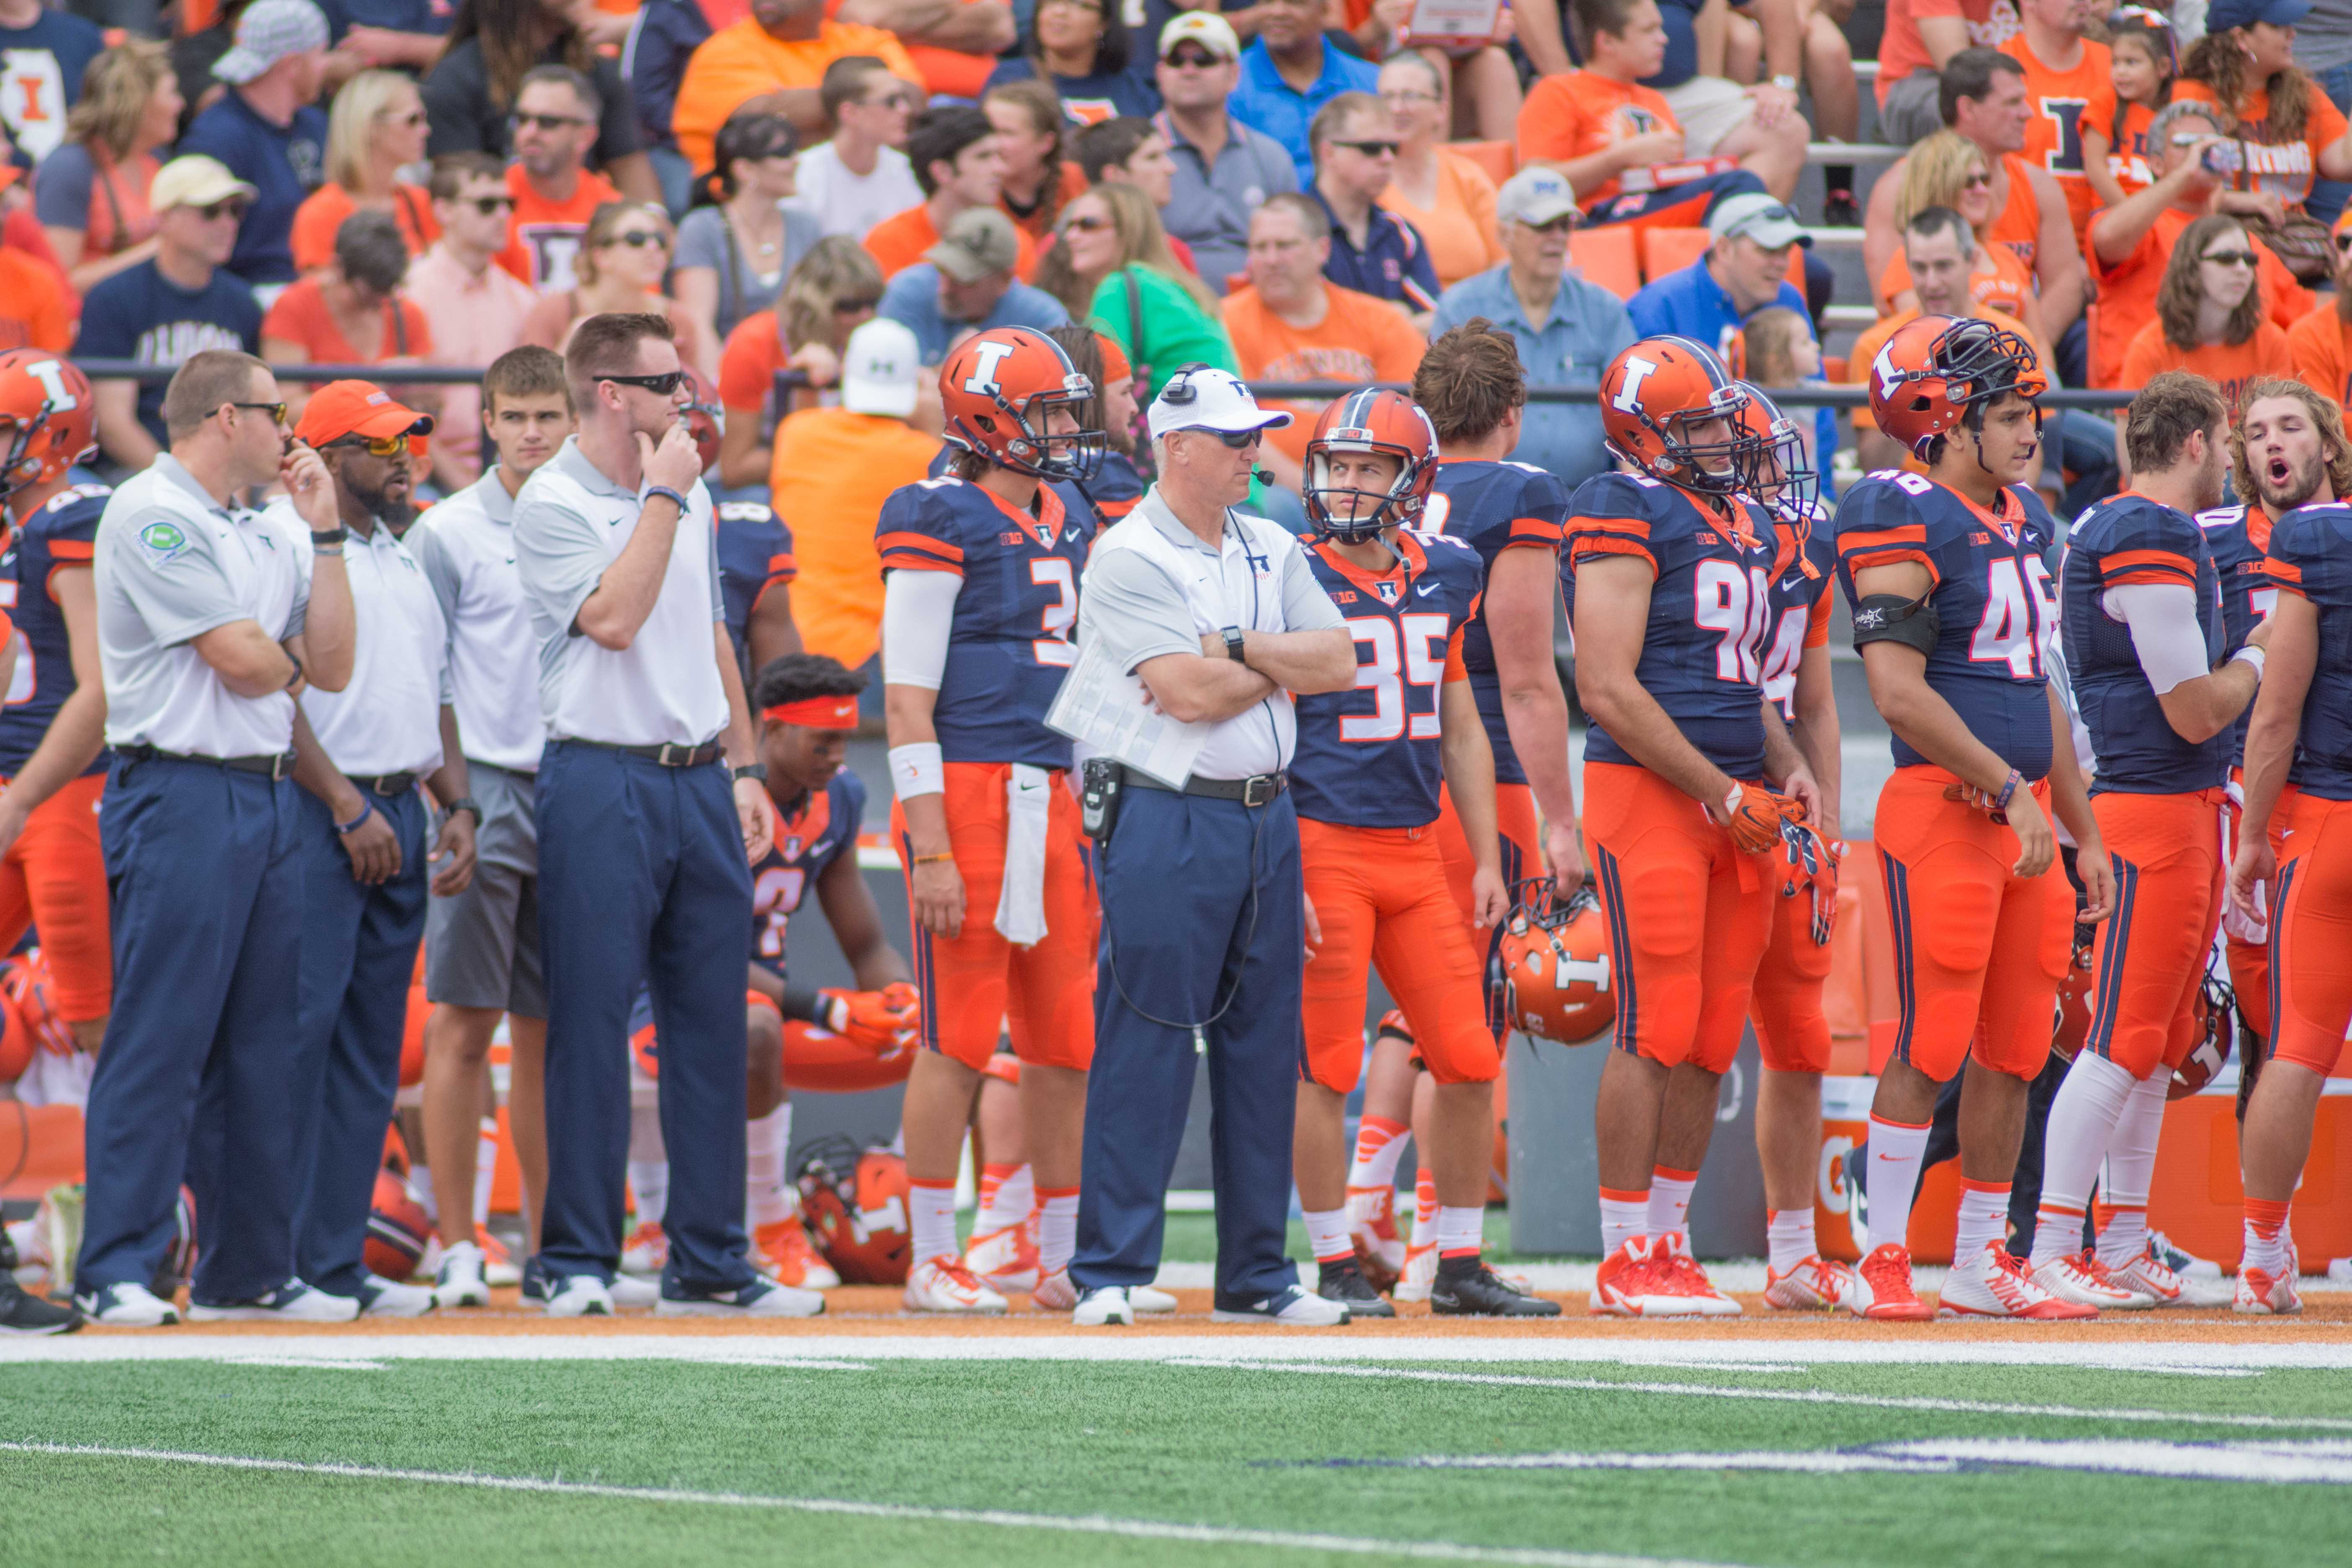 Only+six+Illinois+coaches+have+finished+their+first+season+with+a+winning+record+in+Big+Ten+play%2C+odds+that+don%E2%80%99t+favor+head+coach+Bill+Cubit.